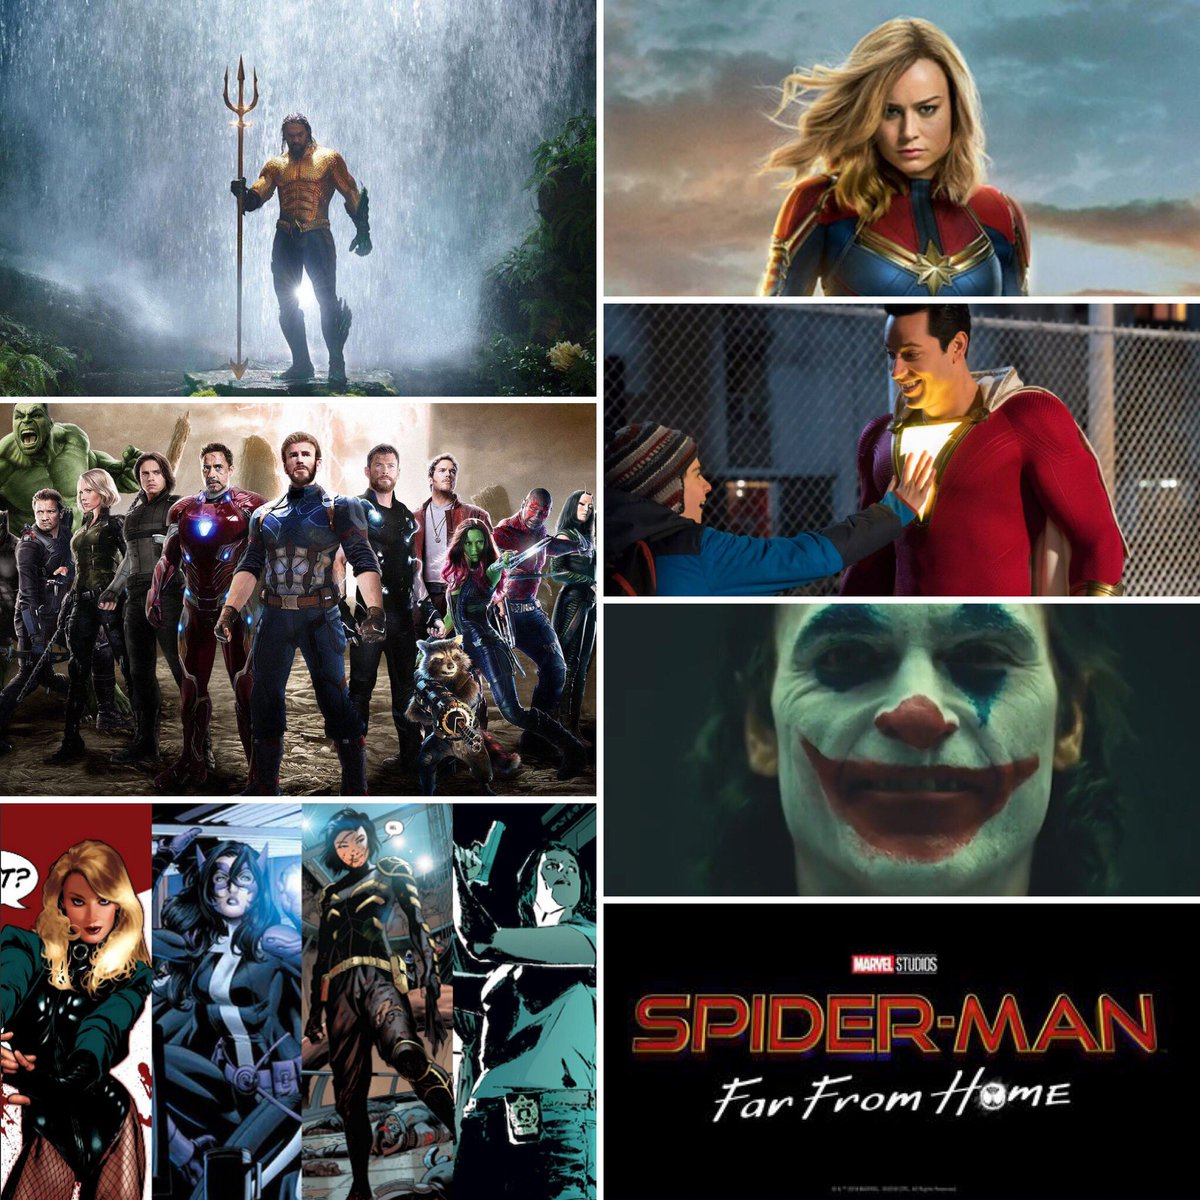 This is why I am perfectly fine seeing #WonderWoman be pushed back for a better slot. We have no shortage of great Comic Book movies coming out. #Aquaman #CaptainMarvel #Shazam #Joker #Avengers #BirdsOfPrey #WW84 #Spiderman